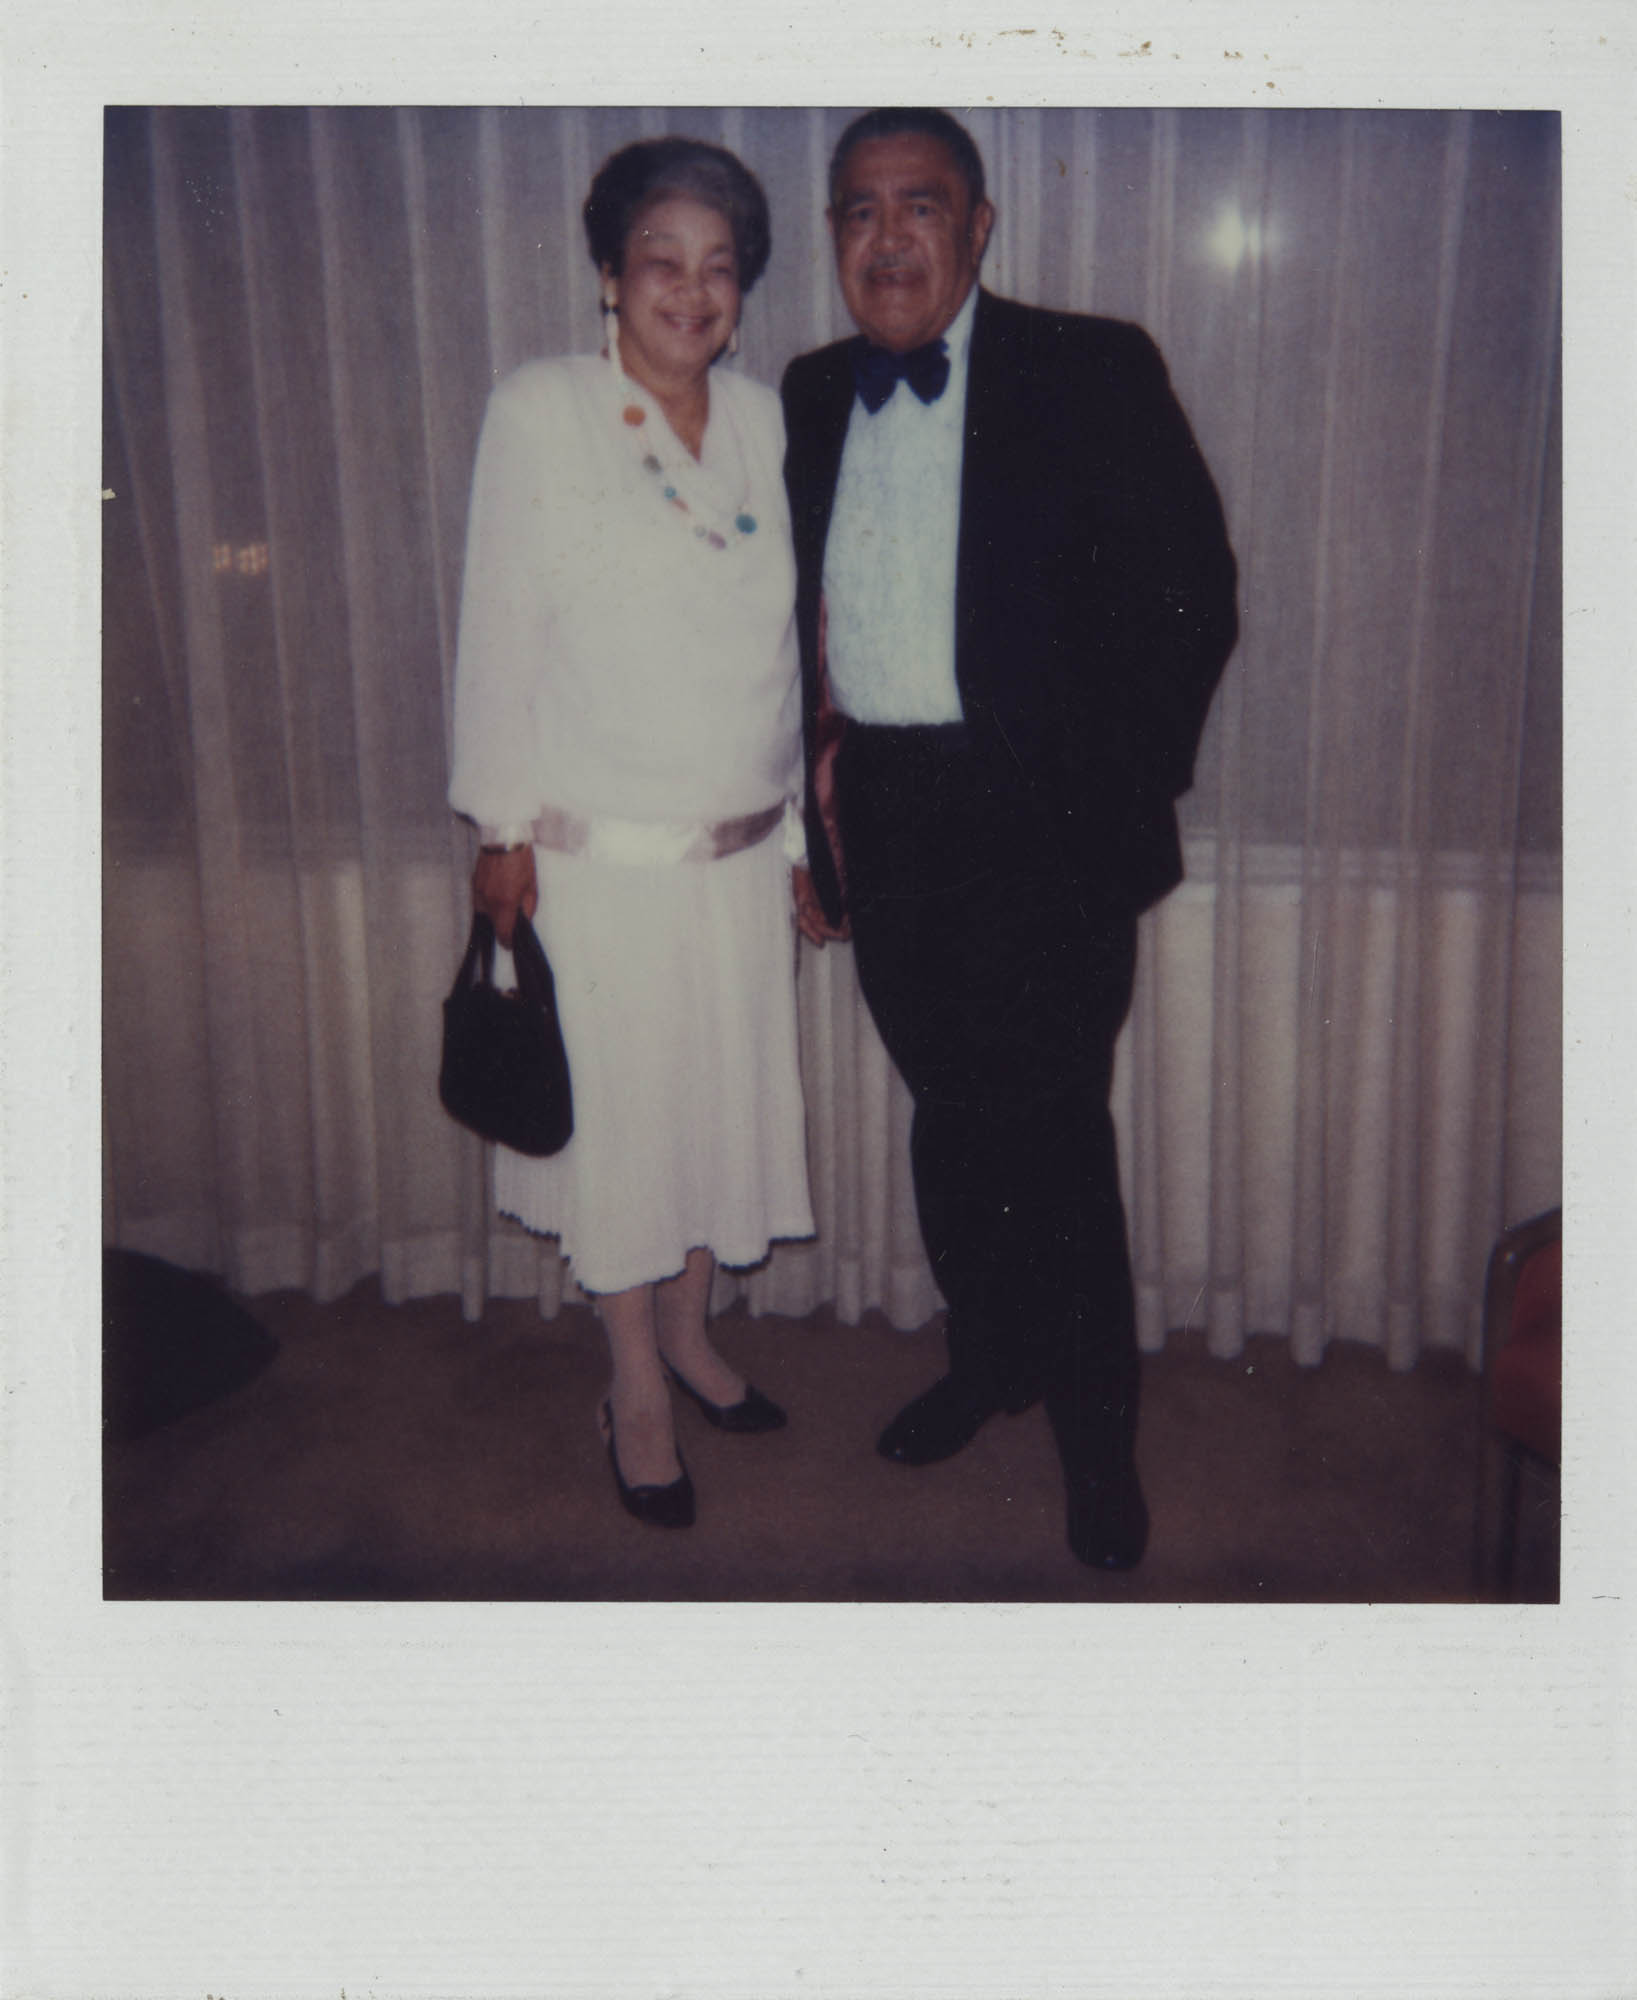 Photograph of J. Arthur Brown and MaeDe Brown in Formal Attire